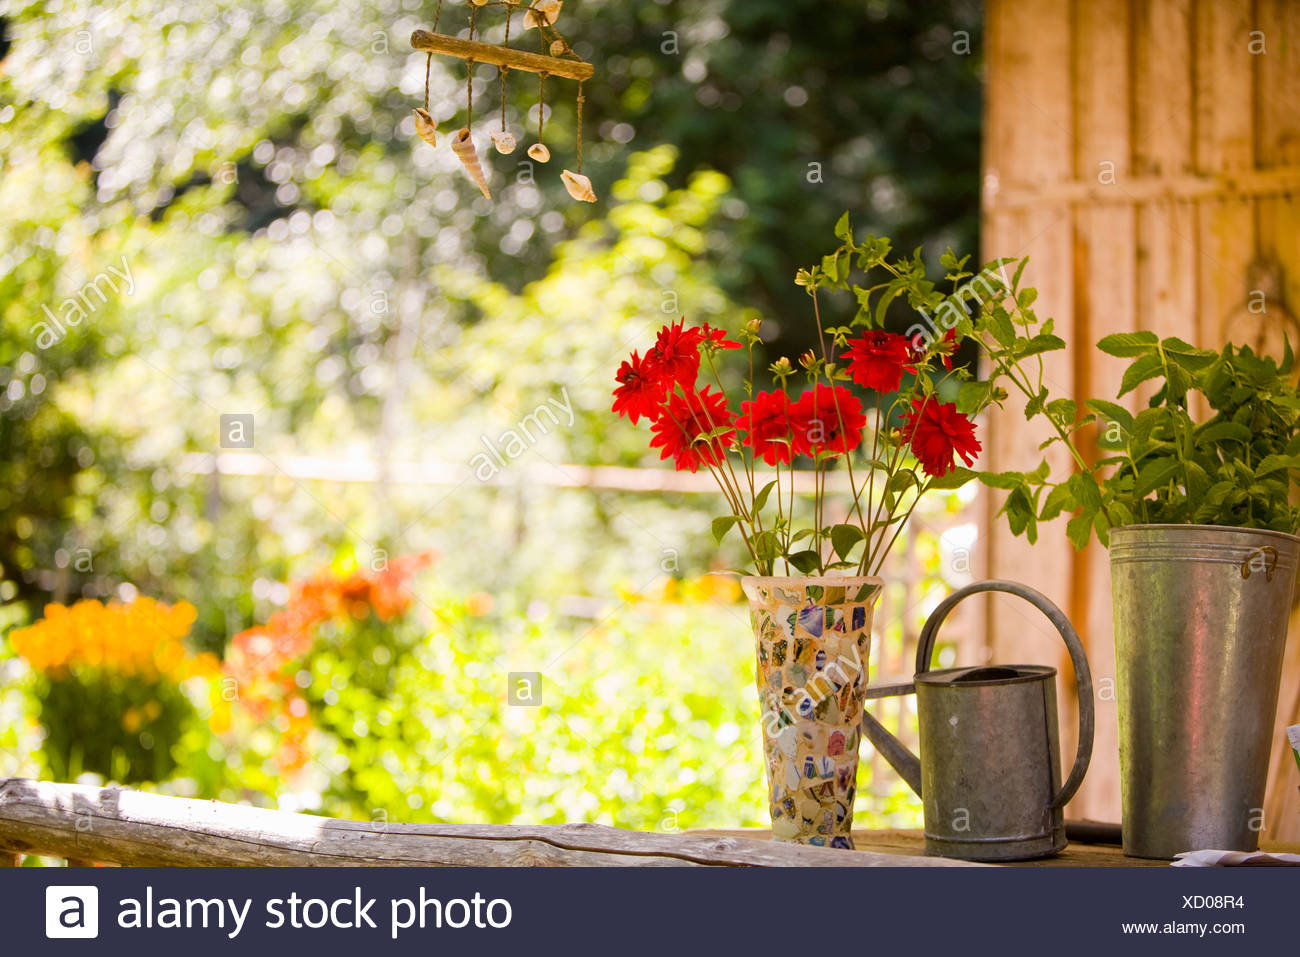 Watering can with a vase of flowers and a potted plant Stock Photo